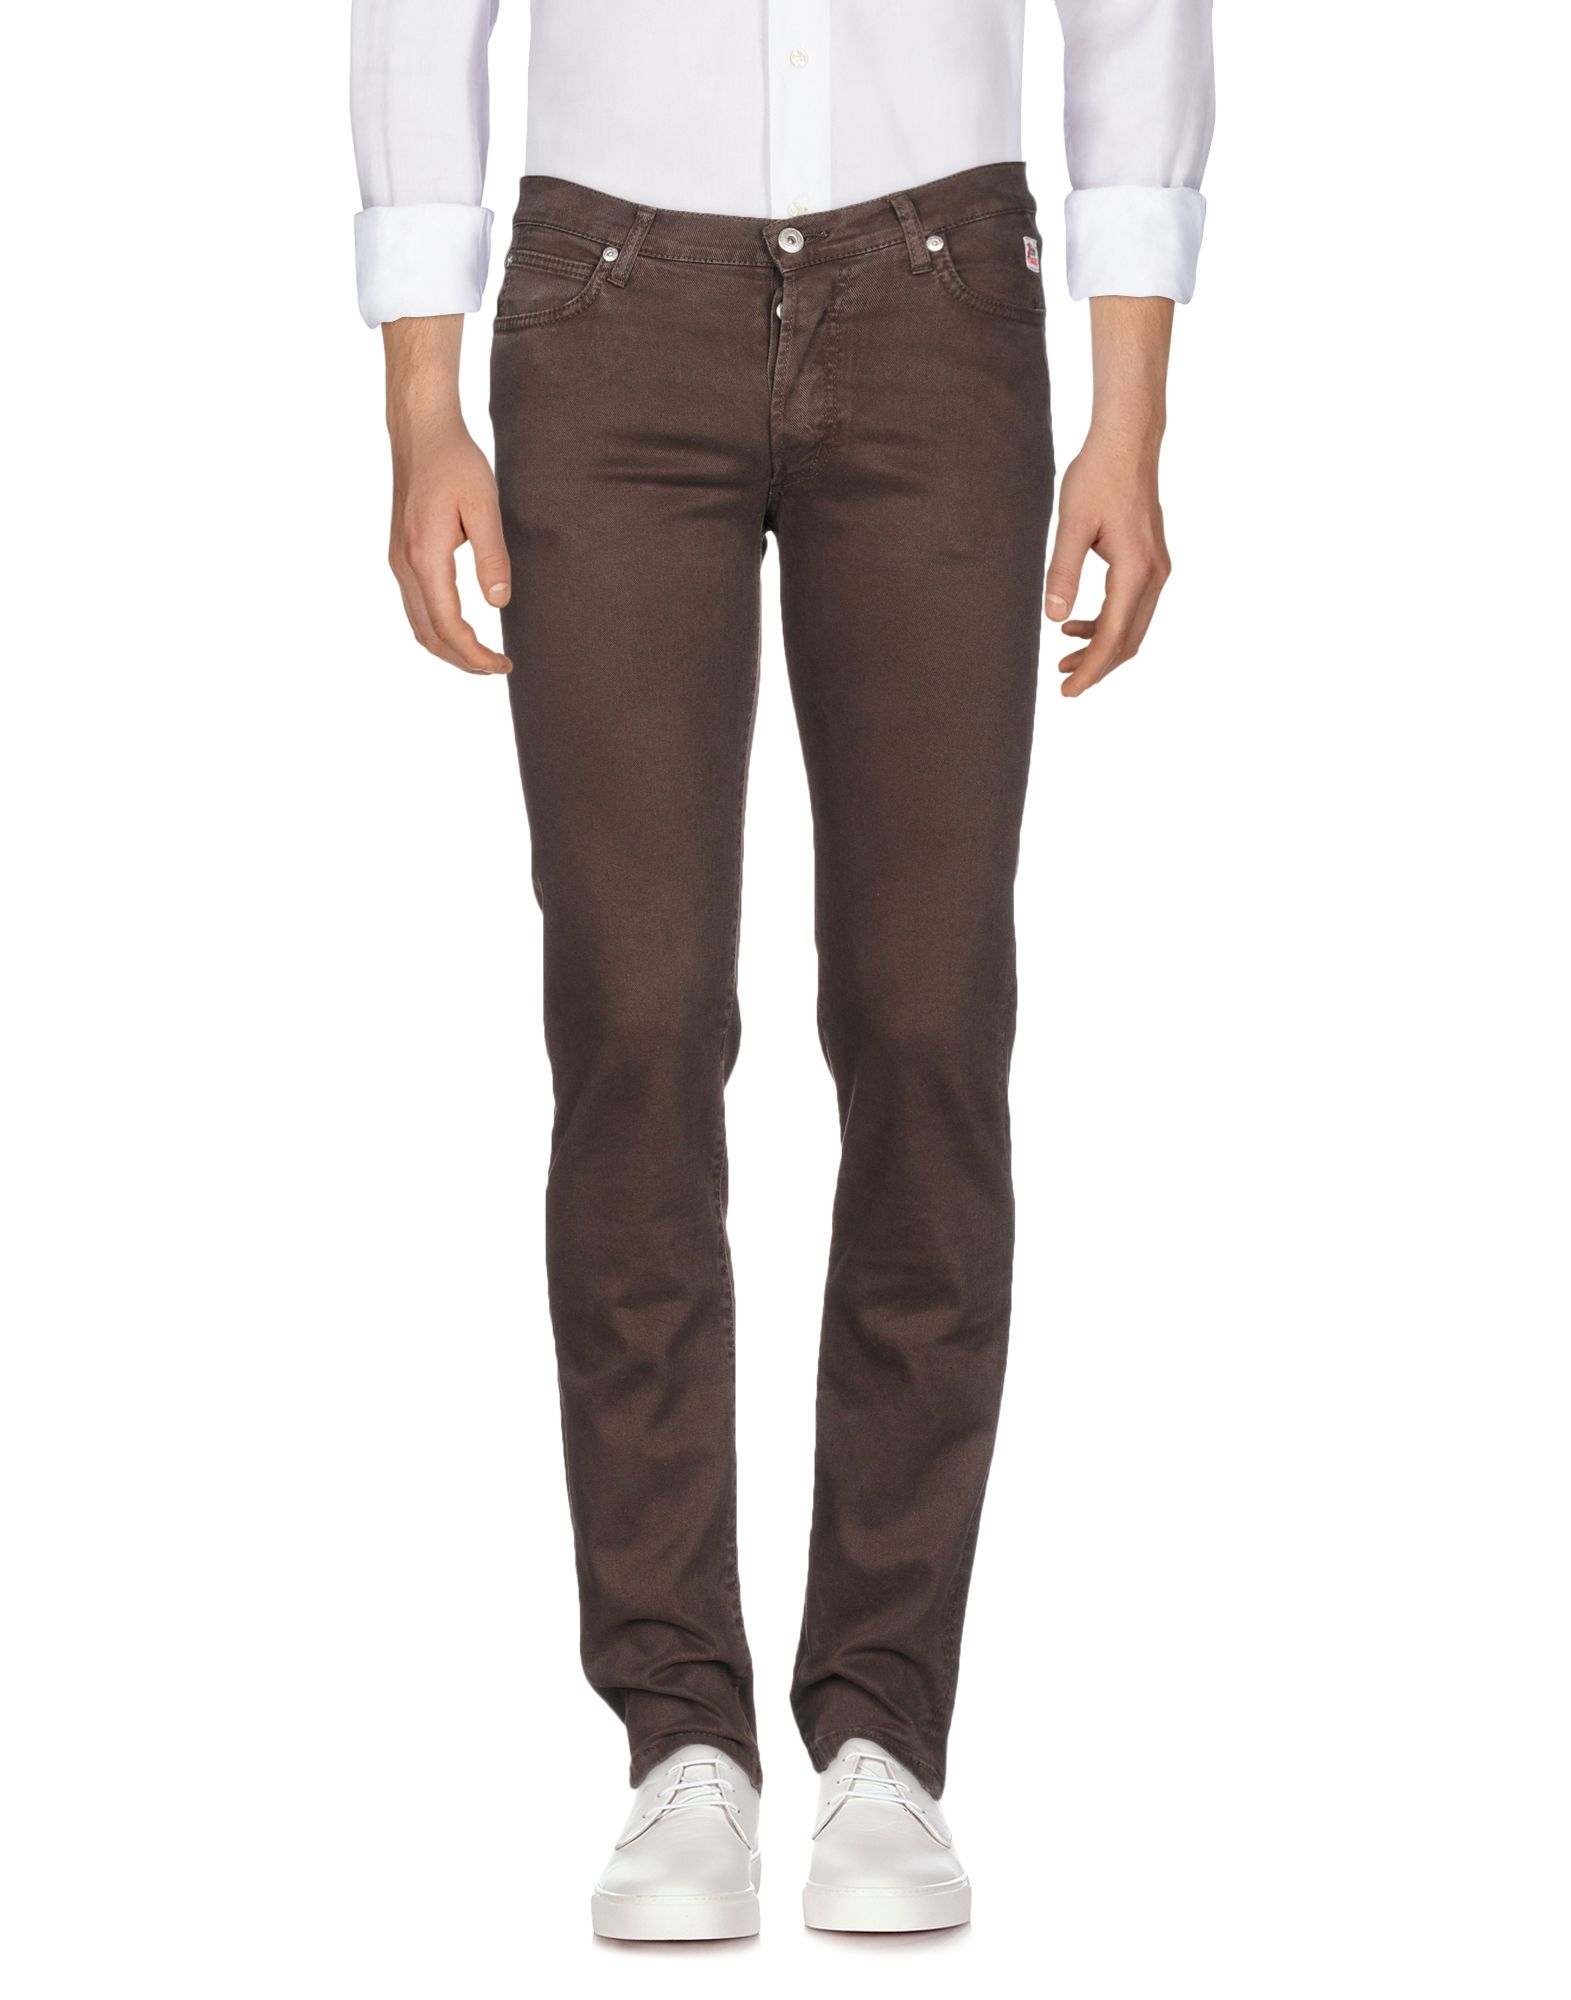 Pantaloni Jeans Jeans Jeans Ro  Roger's Uomo - 13178897UG ecedc4